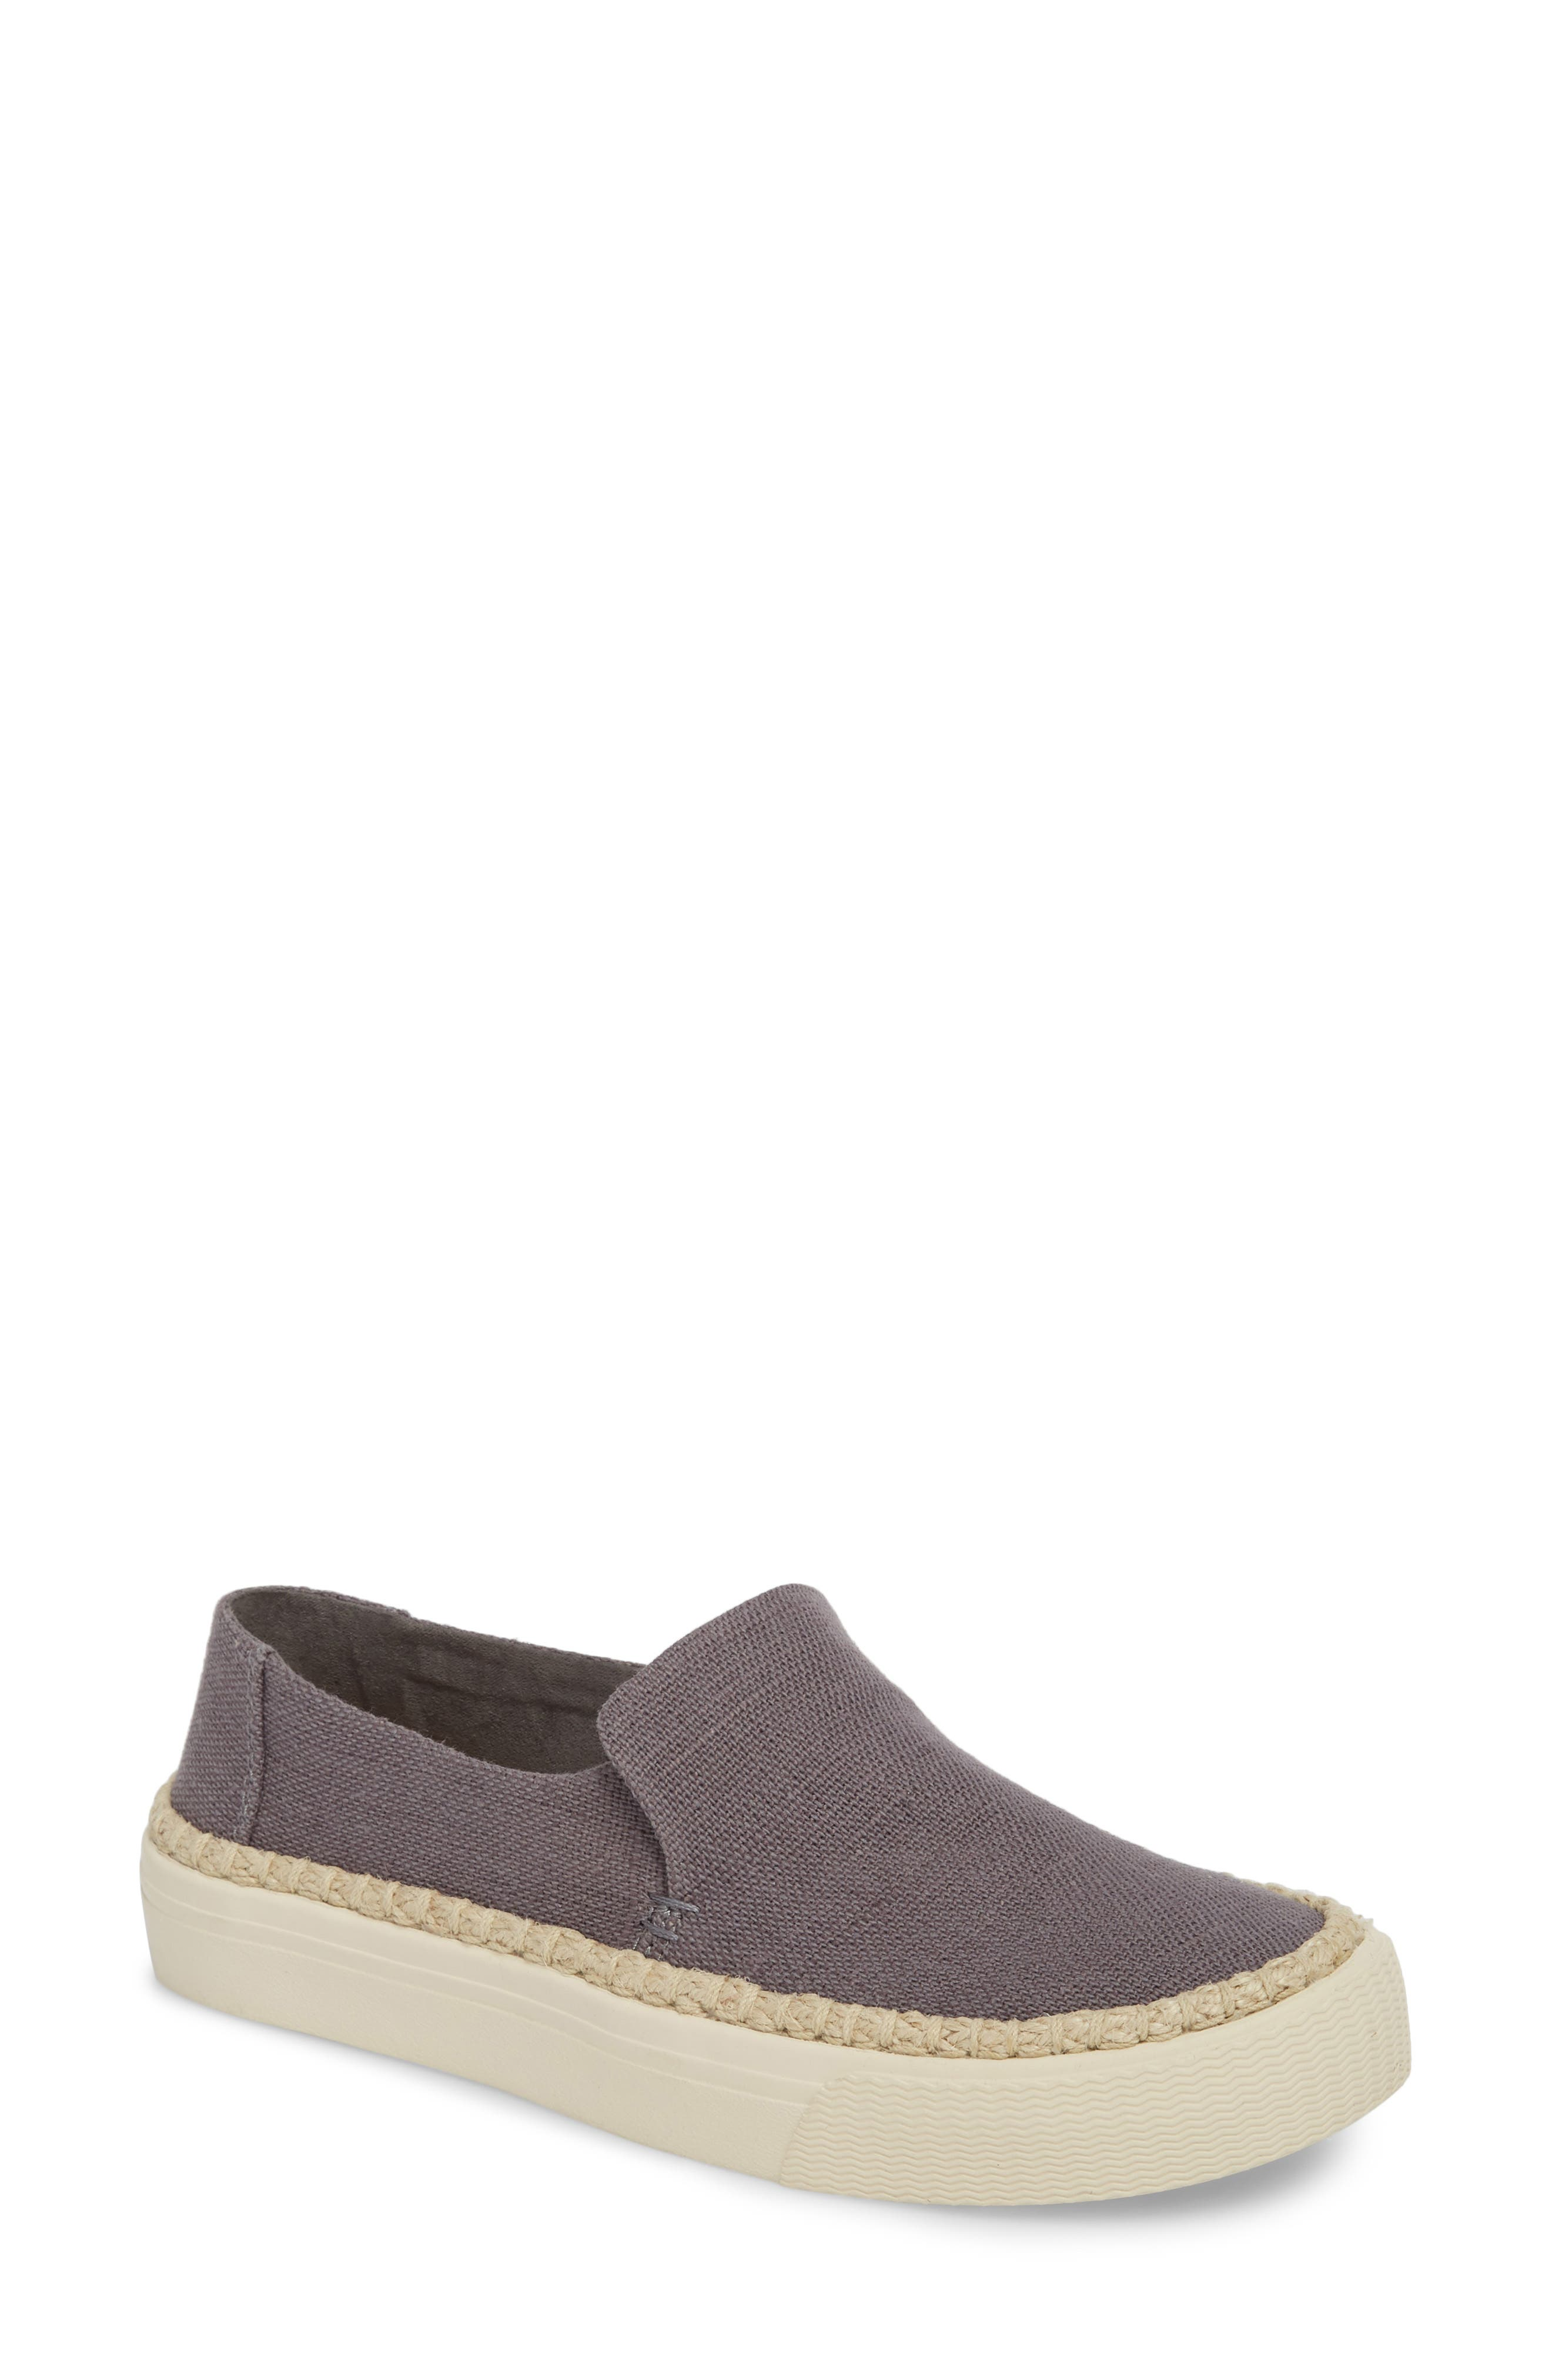 Sunset Slip-On,                         Main,                         color, Shade Heritage Canvas/ Rope